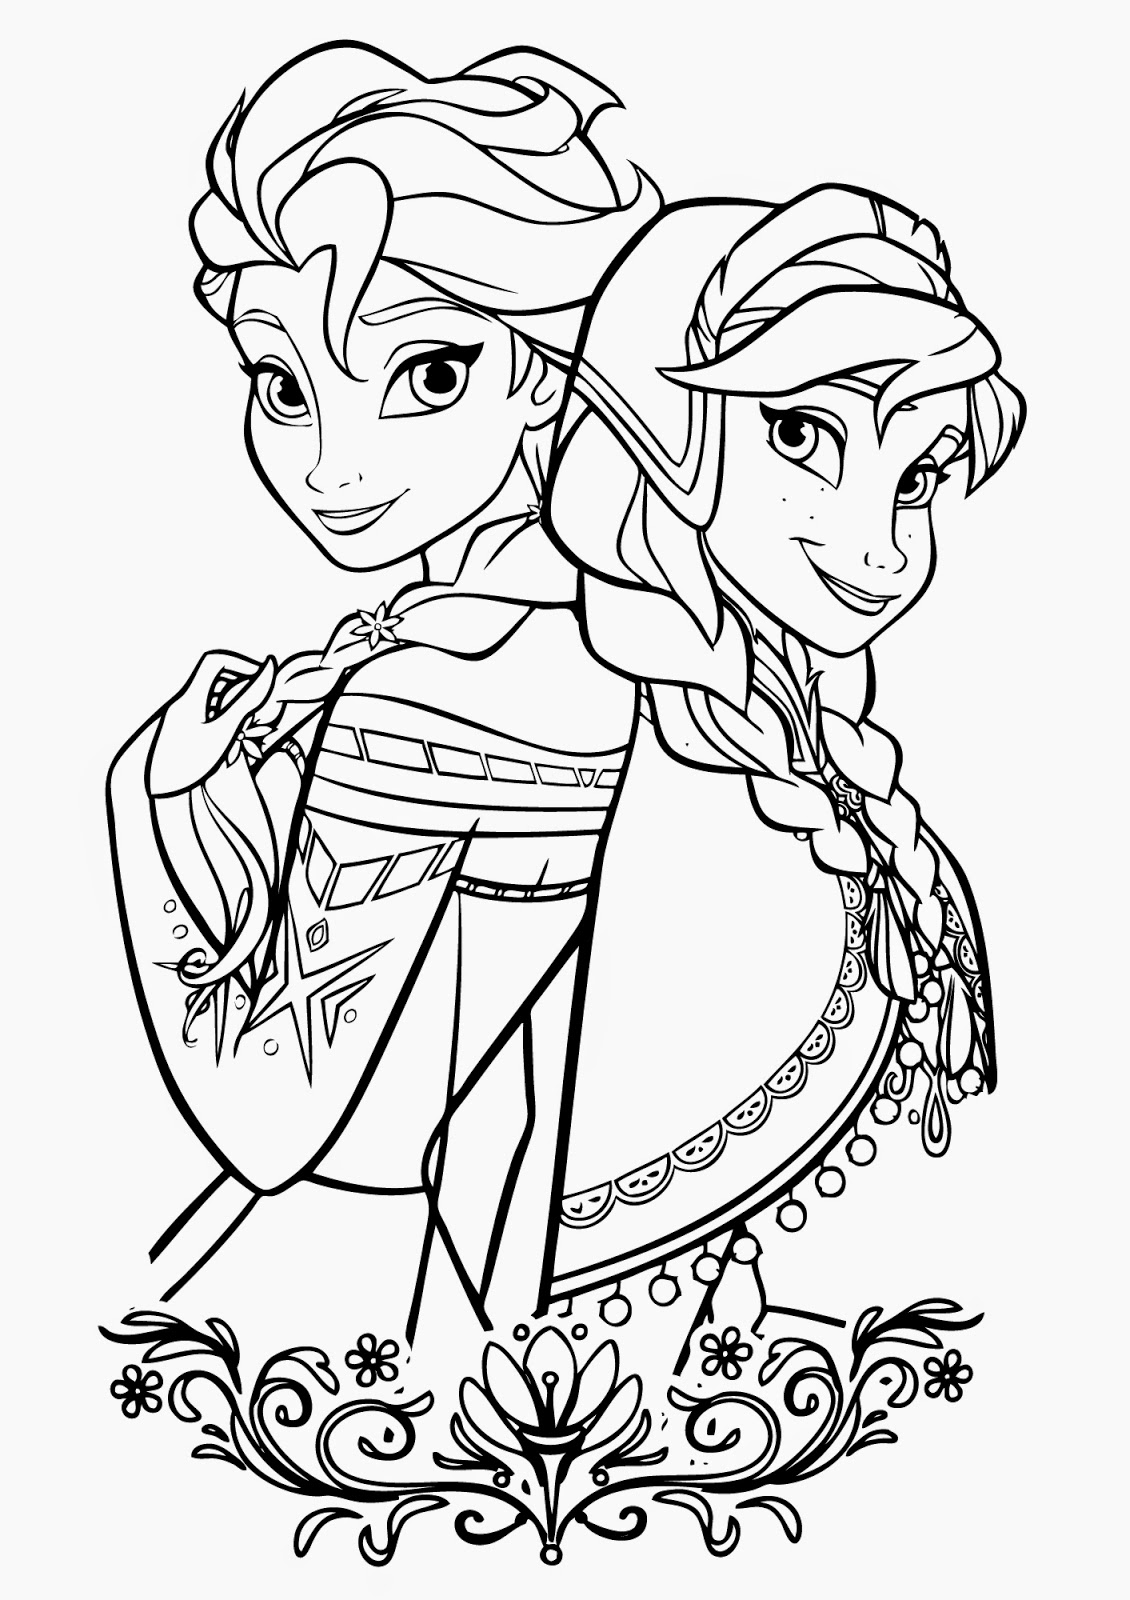 coloring pages of a - photo#17